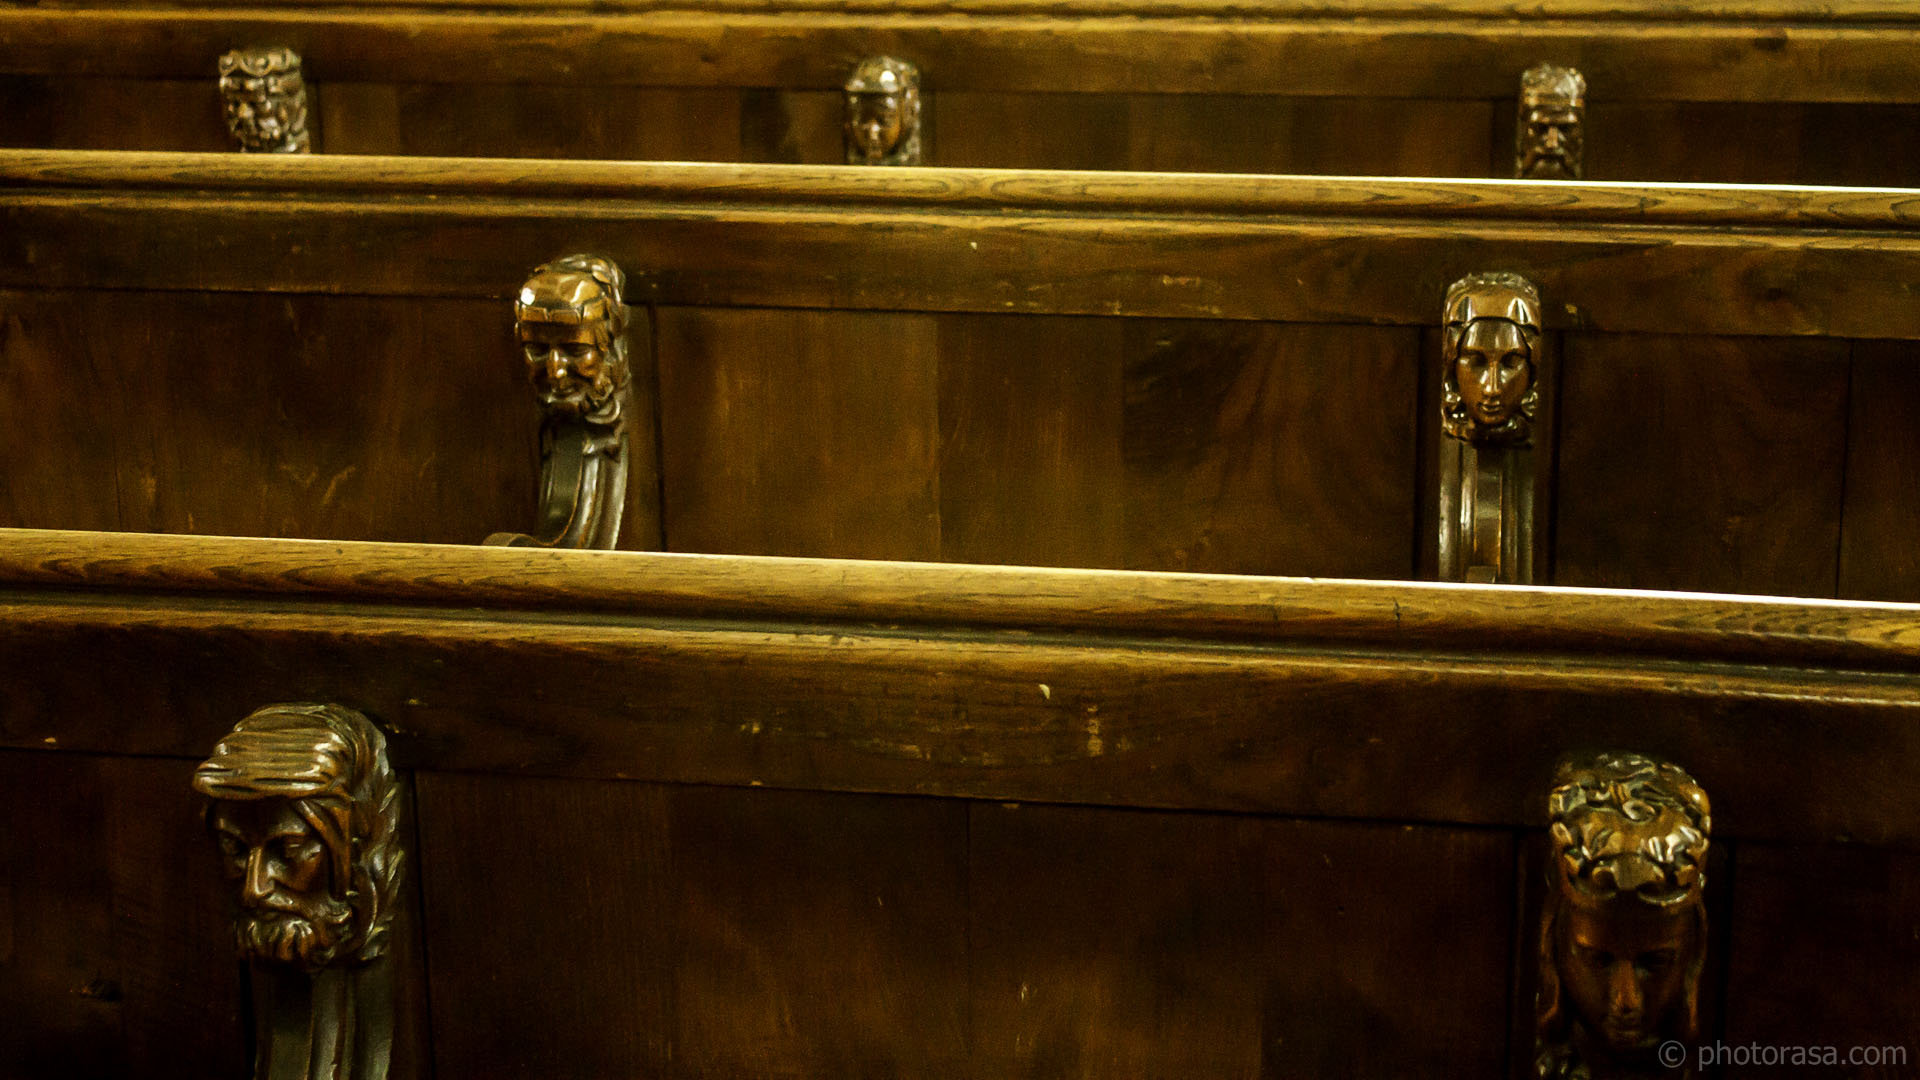 http://photorasa.com/inside-all-saints-church-in-maidstone/choir-stalls-with-carved-heads/